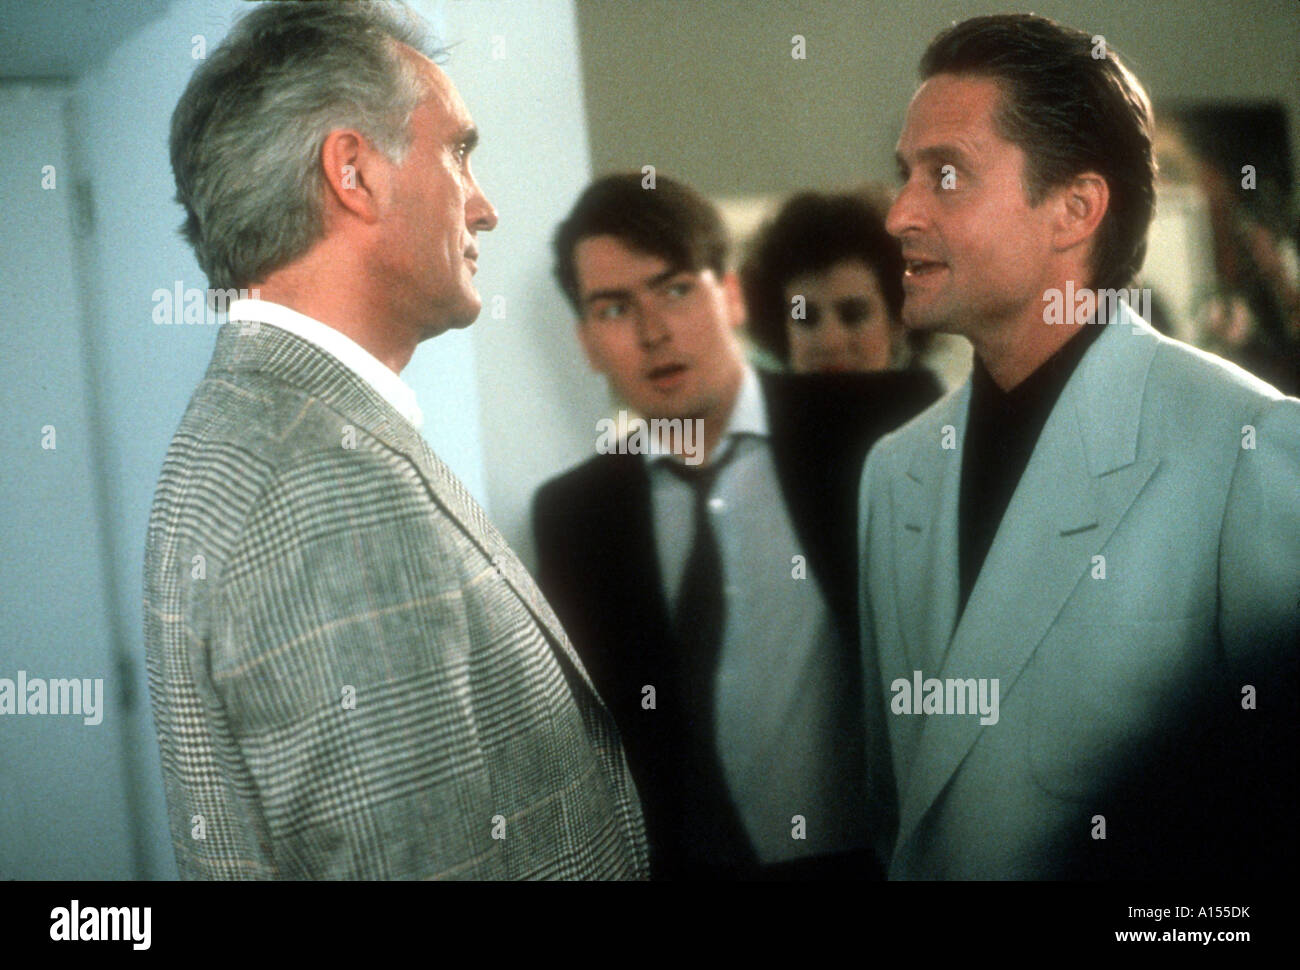 a review of the 1987 oliver stones wall street Is seduced by the power, status and financial wizardry of wall street legend  gordon gekko (michael douglas)  drama | 1987r126 mincc  reviews  kevin carr 7m pictures a compelling drama that is exceedingly well acted (with  the obvious  blustery and unsophisticated, like many of the movies of oliver  stone.